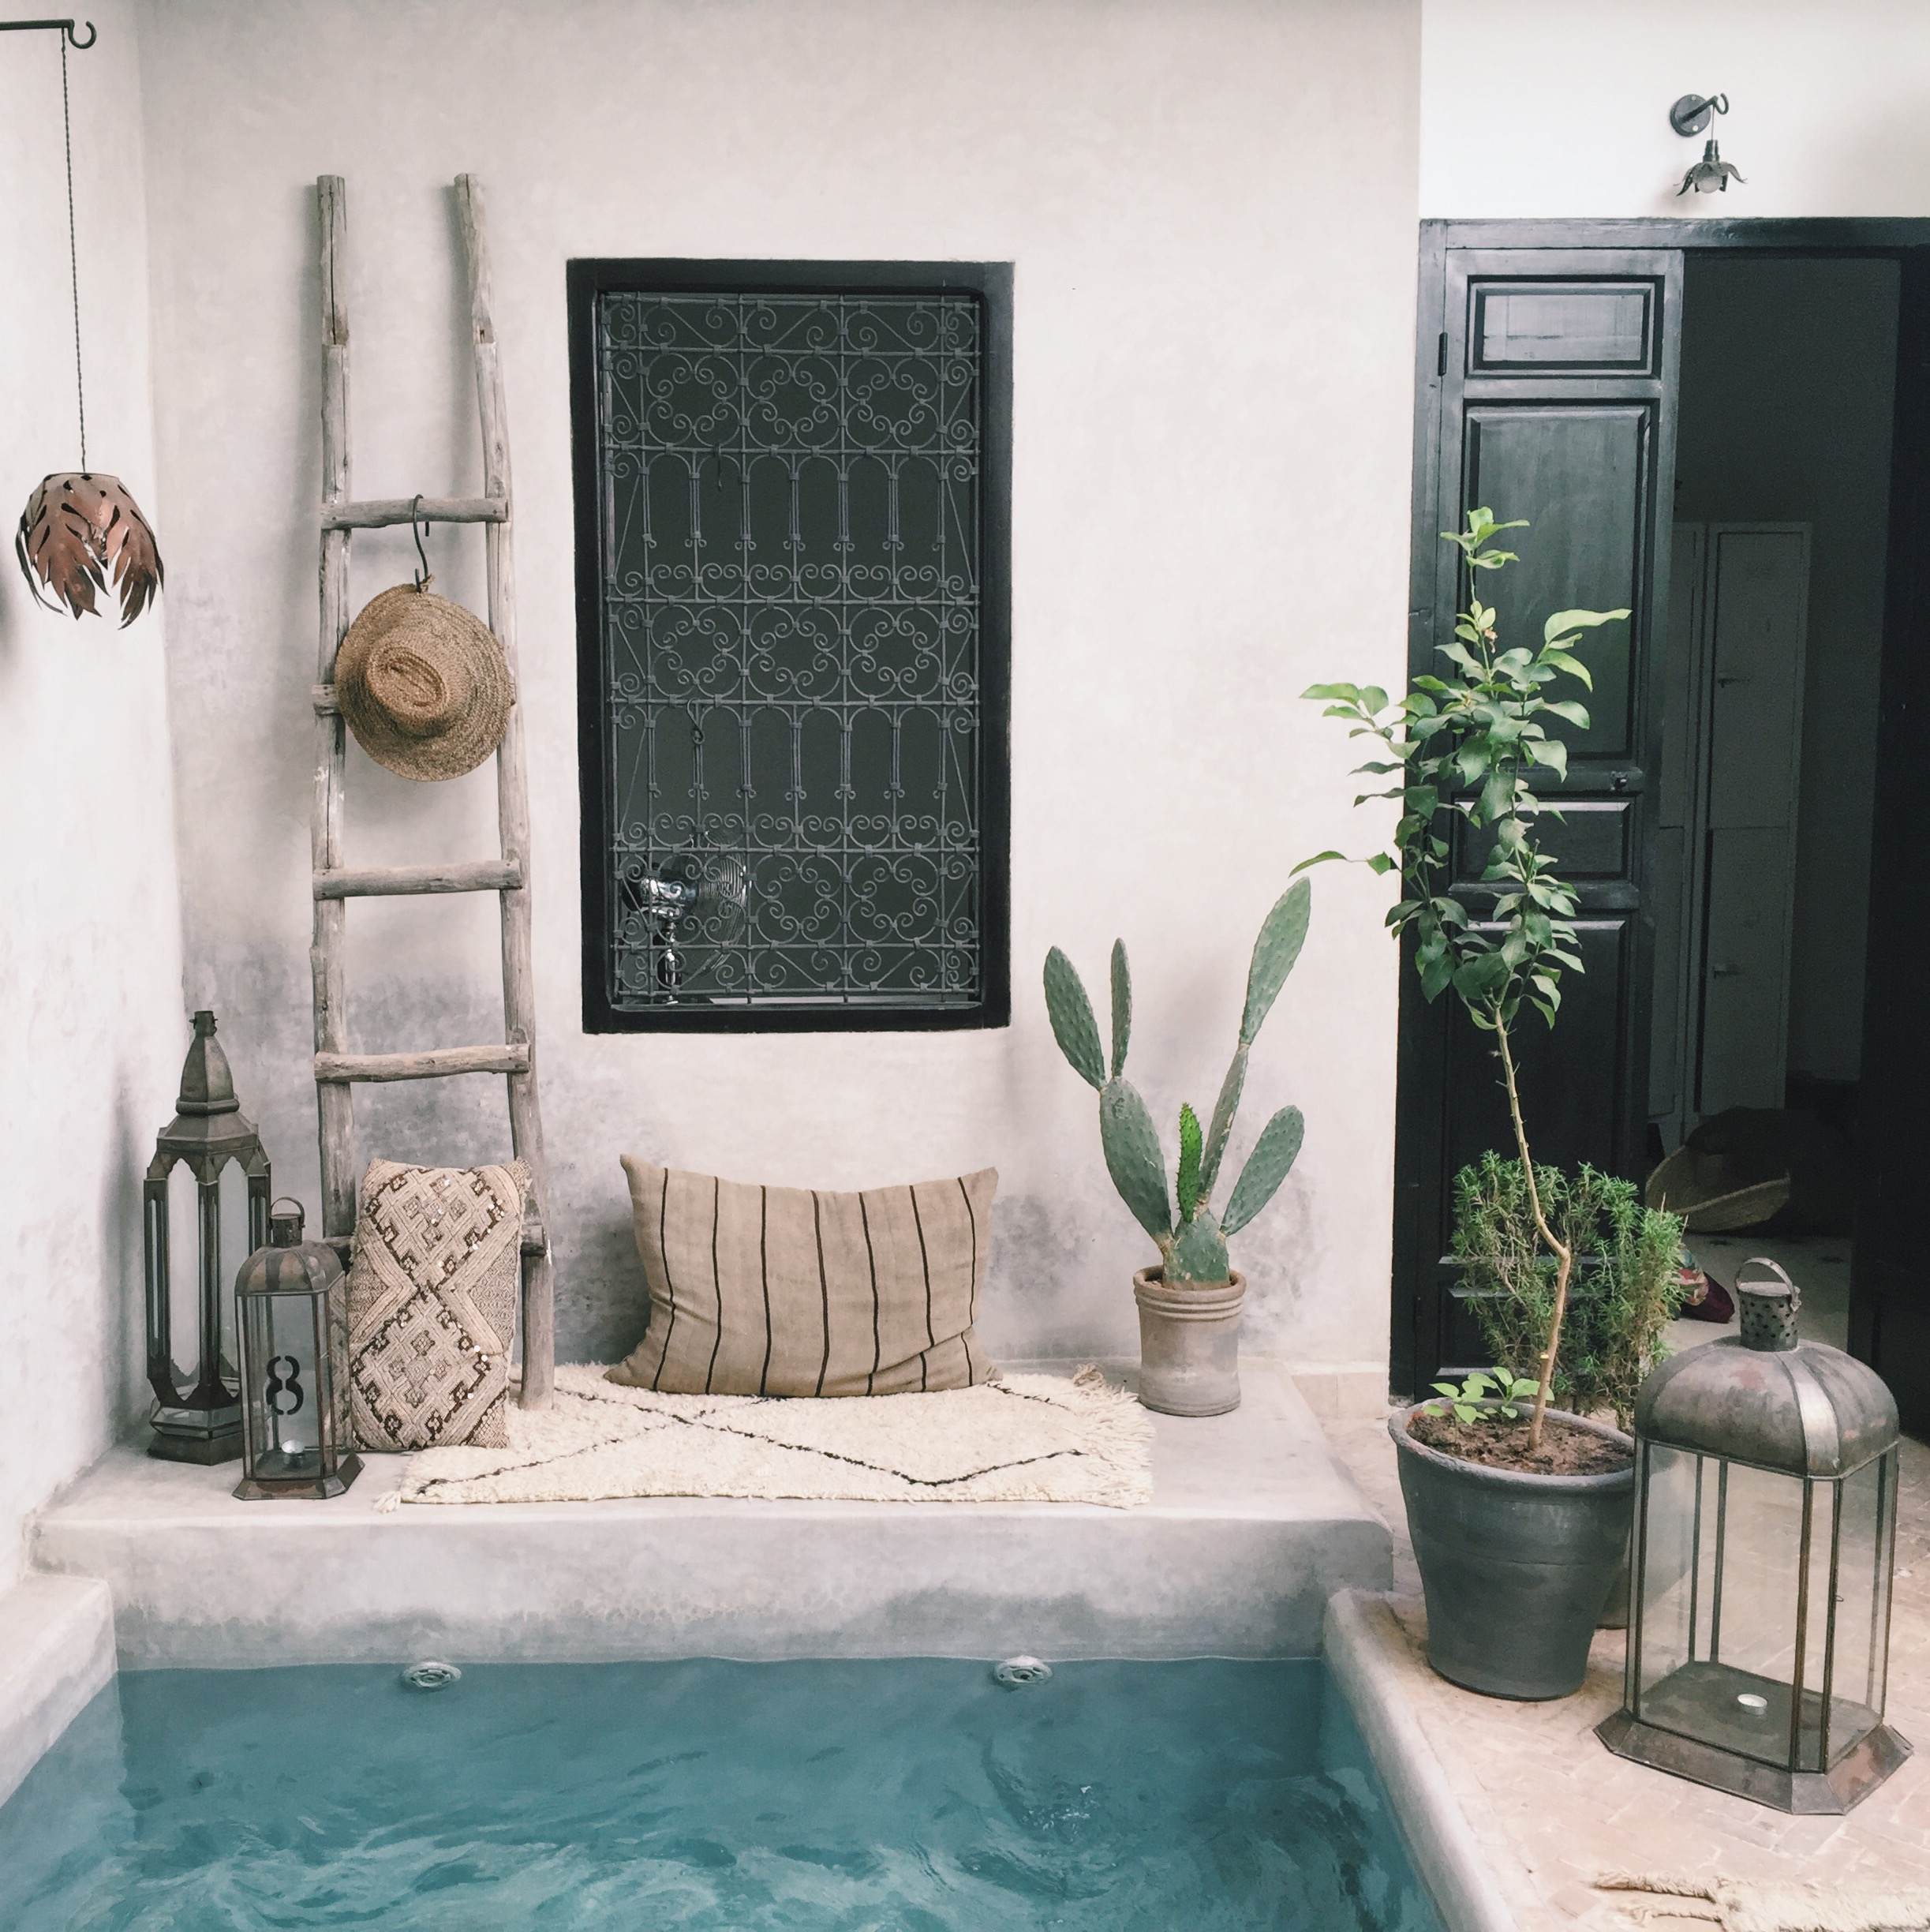 could not get enough of this beautiful courtyard and home